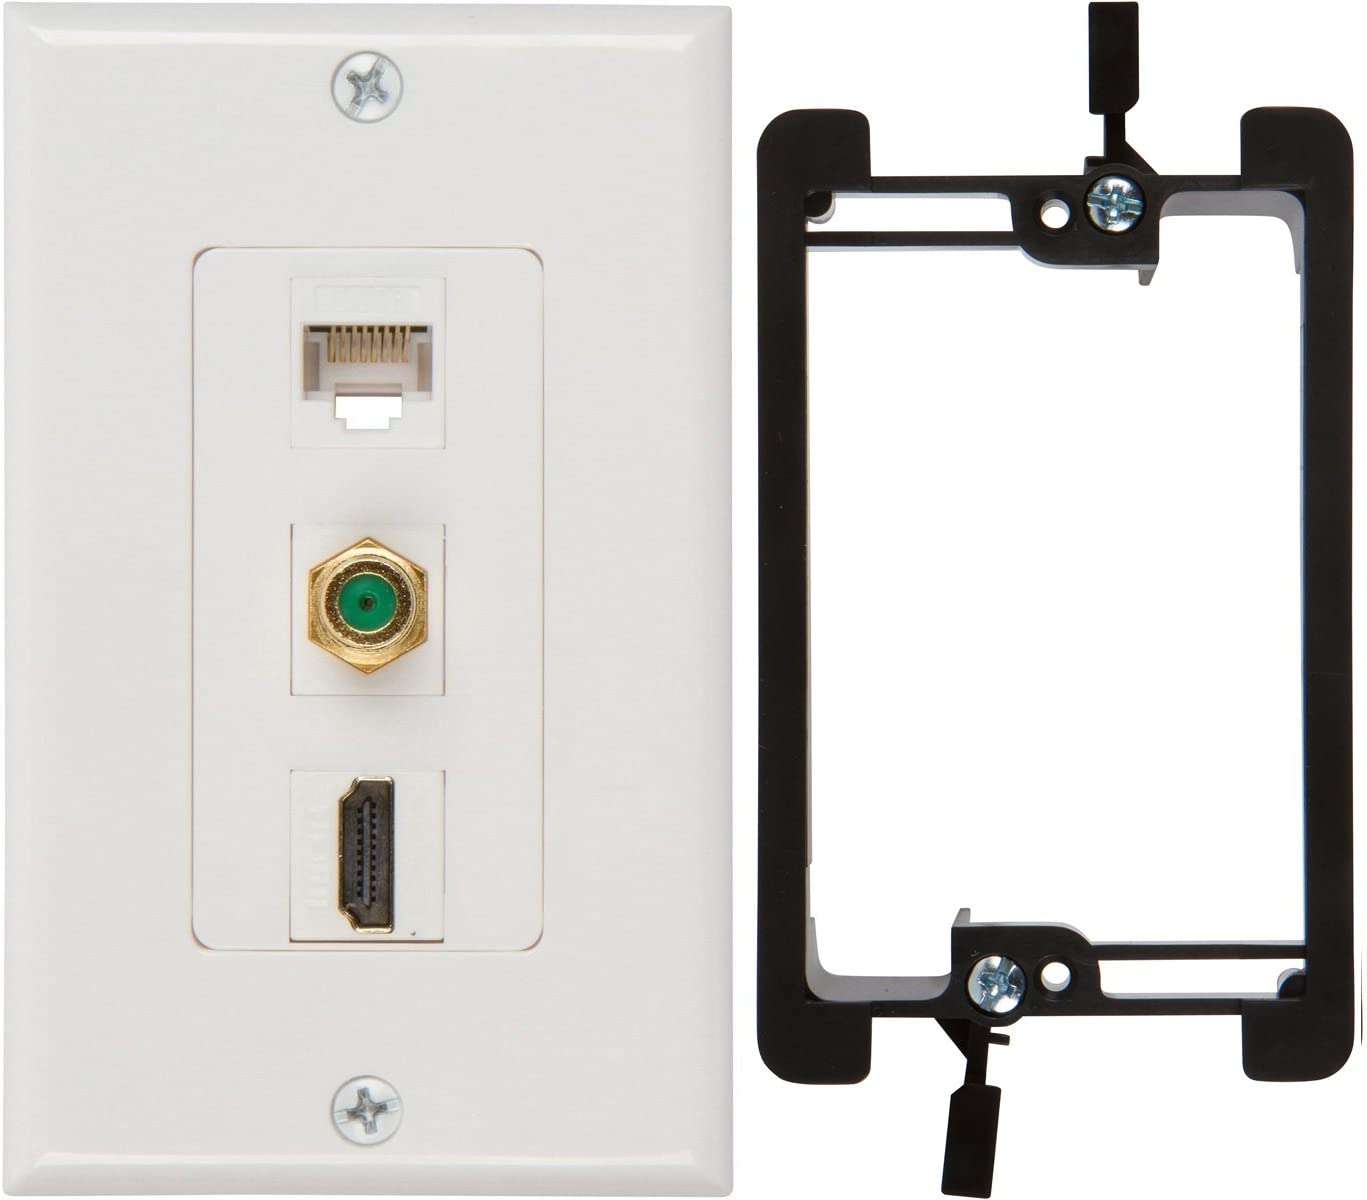 Buyer's Point HDMI 3GHz Cheap mail order shopping Coax Ethernet Listed Max 72% OFF UL wit Wall Plate